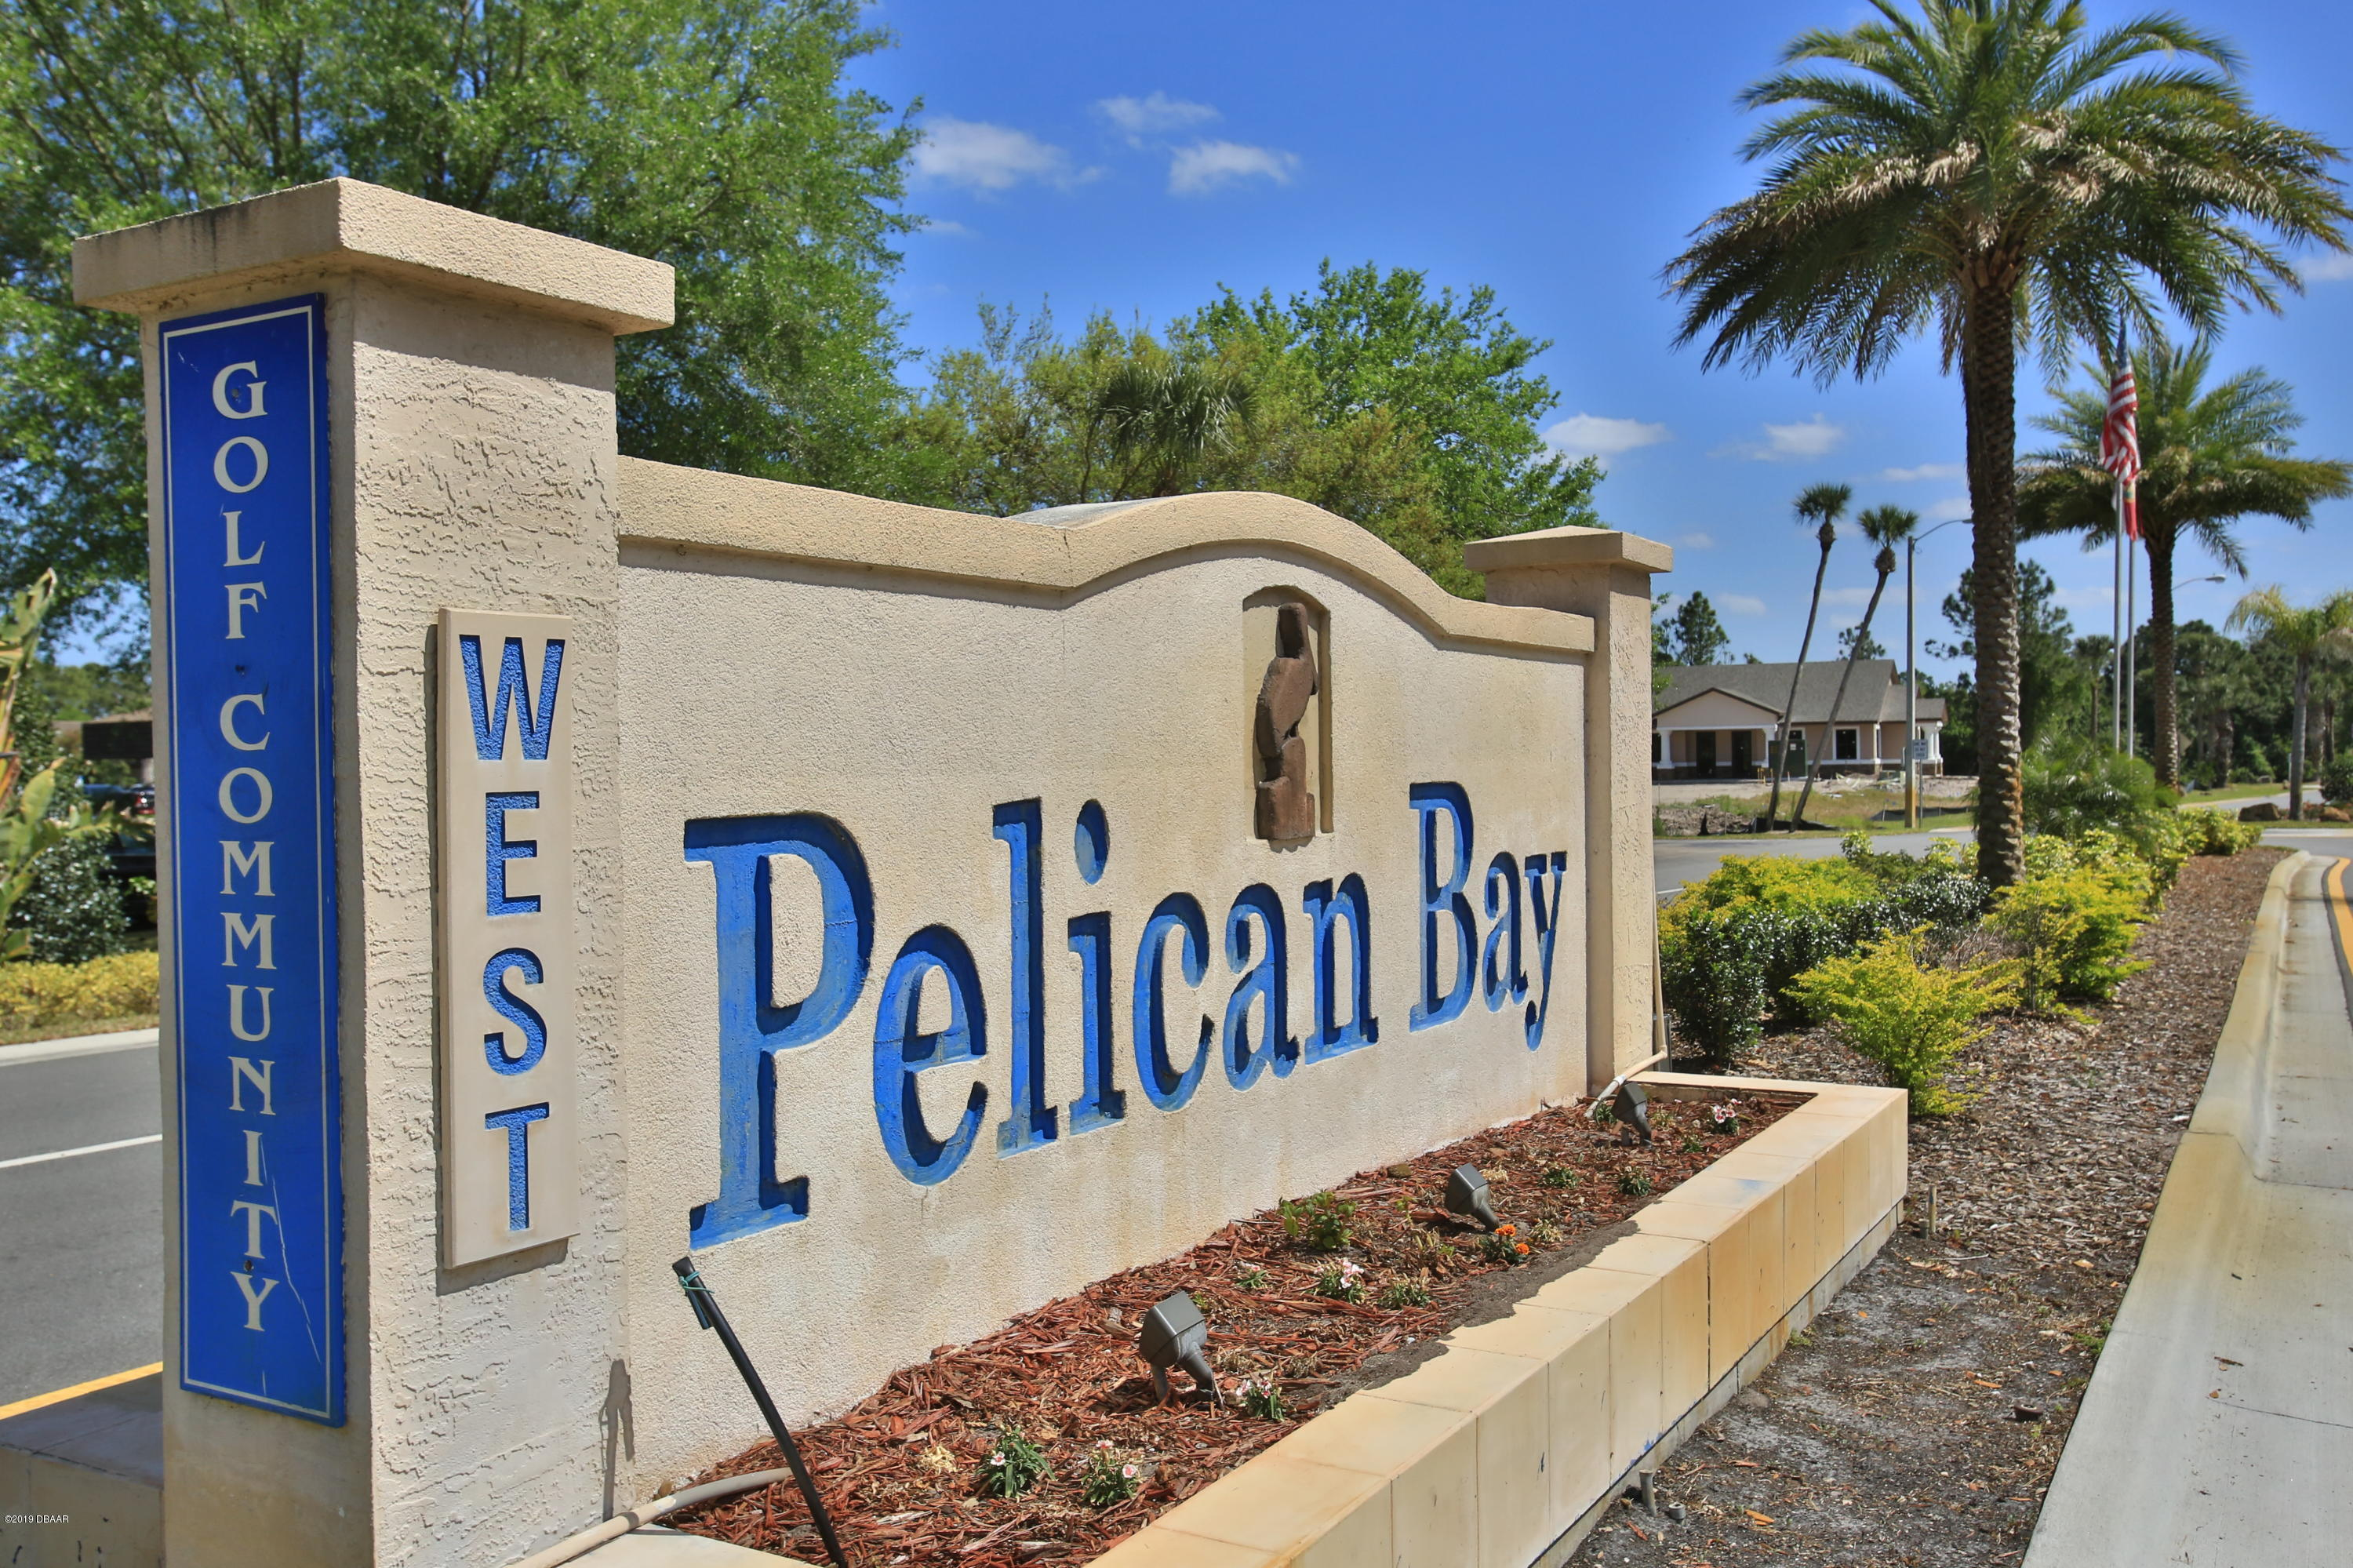 145 Blue Heron Daytona Beach - 19